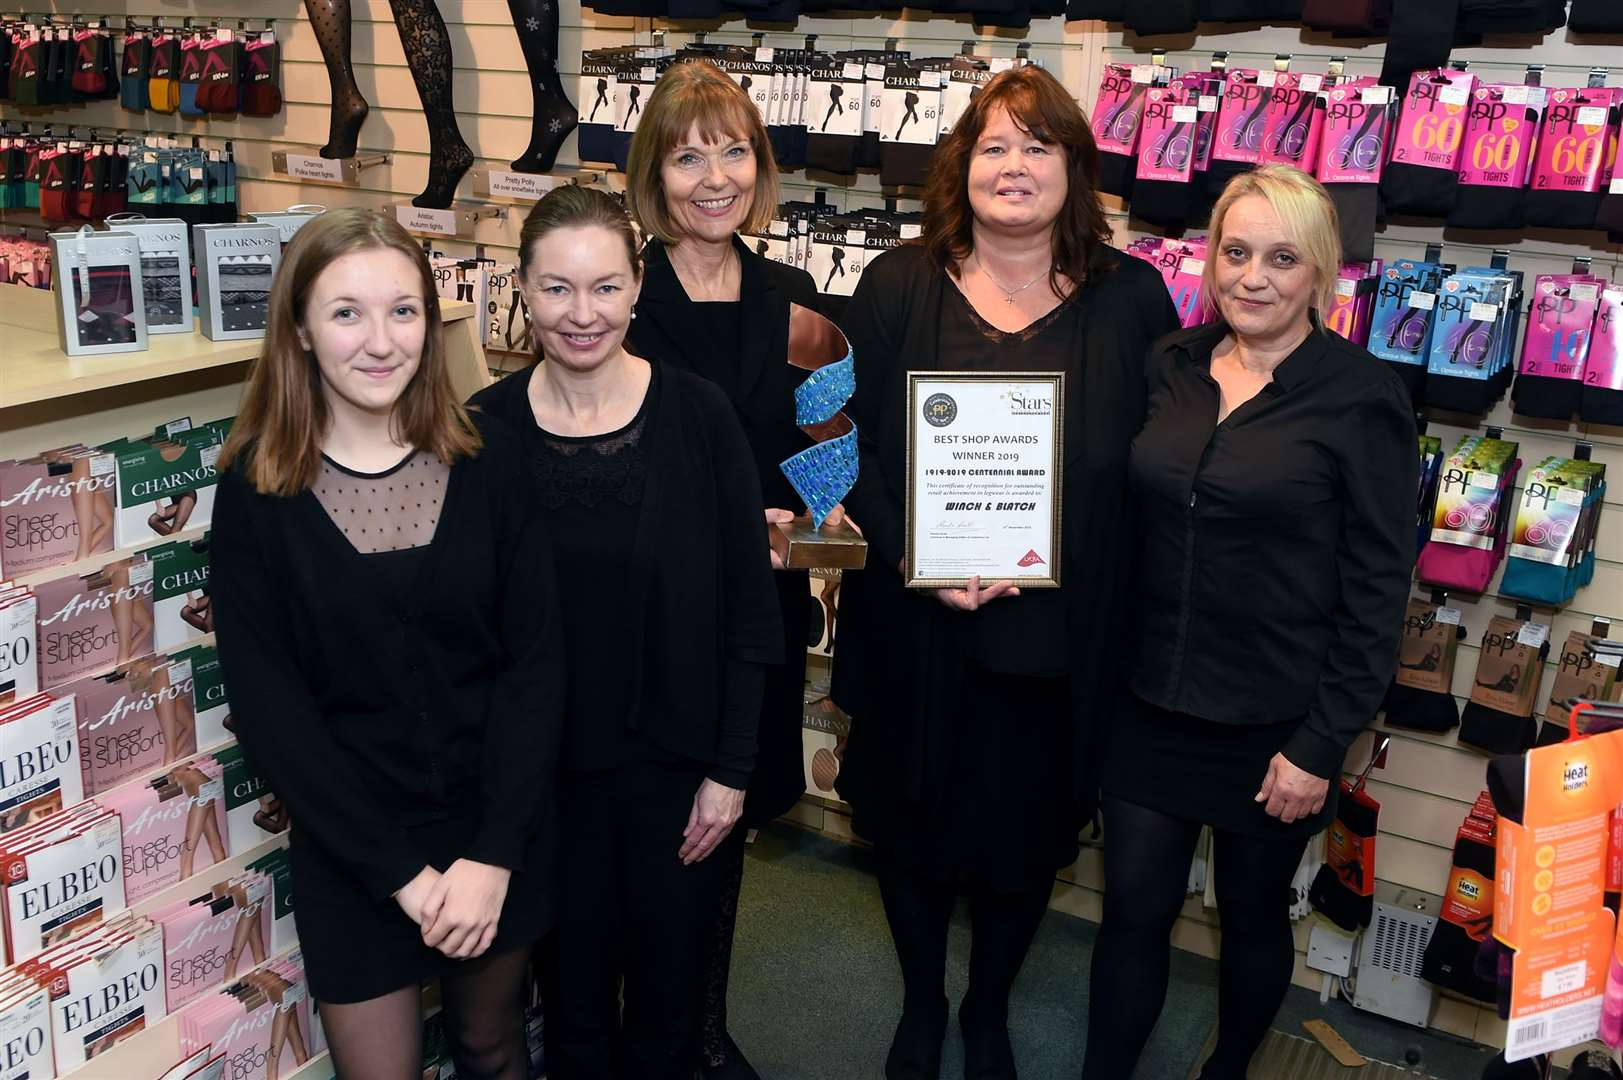 Winch & Blatch department store has recently won a Pretty Polly Centennial Award..Pictured: Tilly Mace (Sales Assistant), Tracy Welsh (Assistant Store Manager), Judith Blatch, Hazel Barnard (Buyer) and Sharon Game (Cafe Manager)....PICTURE: Mecha Morton .... (22635371)